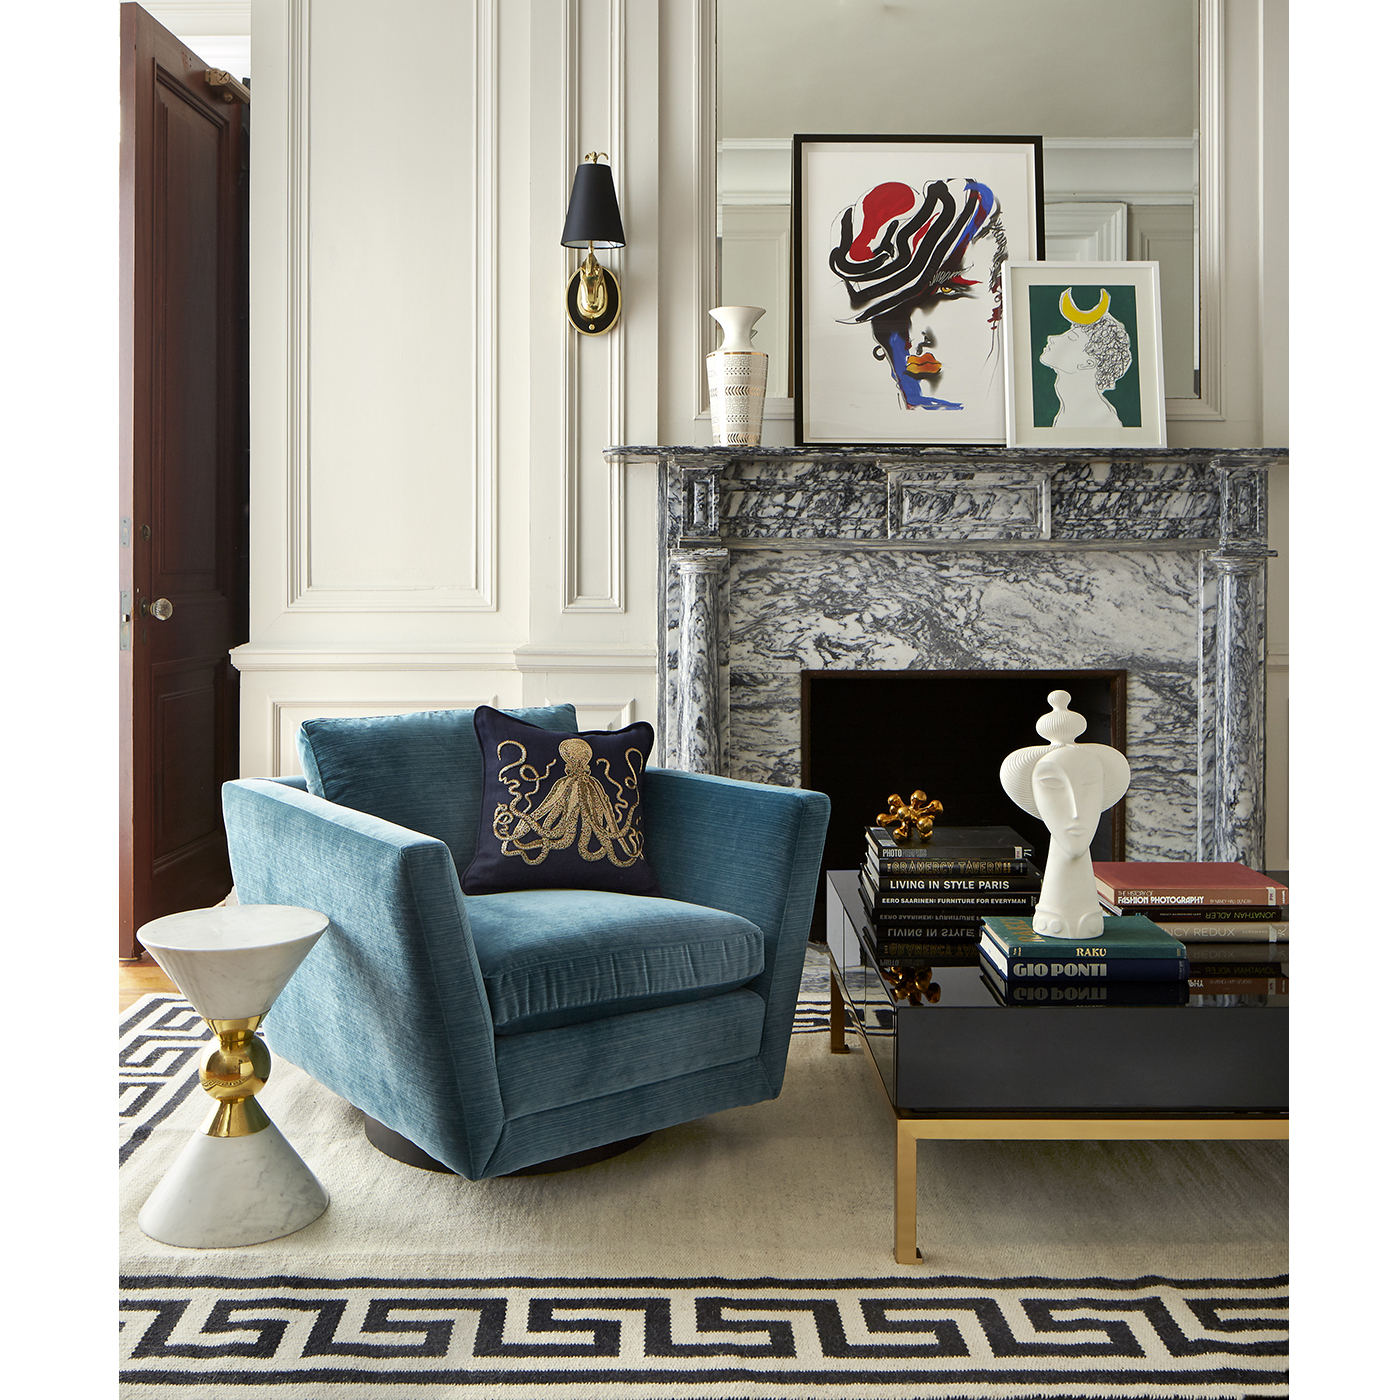 jonathan adler Jonathan Adler: A Flawless Rug Collection Jonathan Adler A Flawles Rug Collection 6